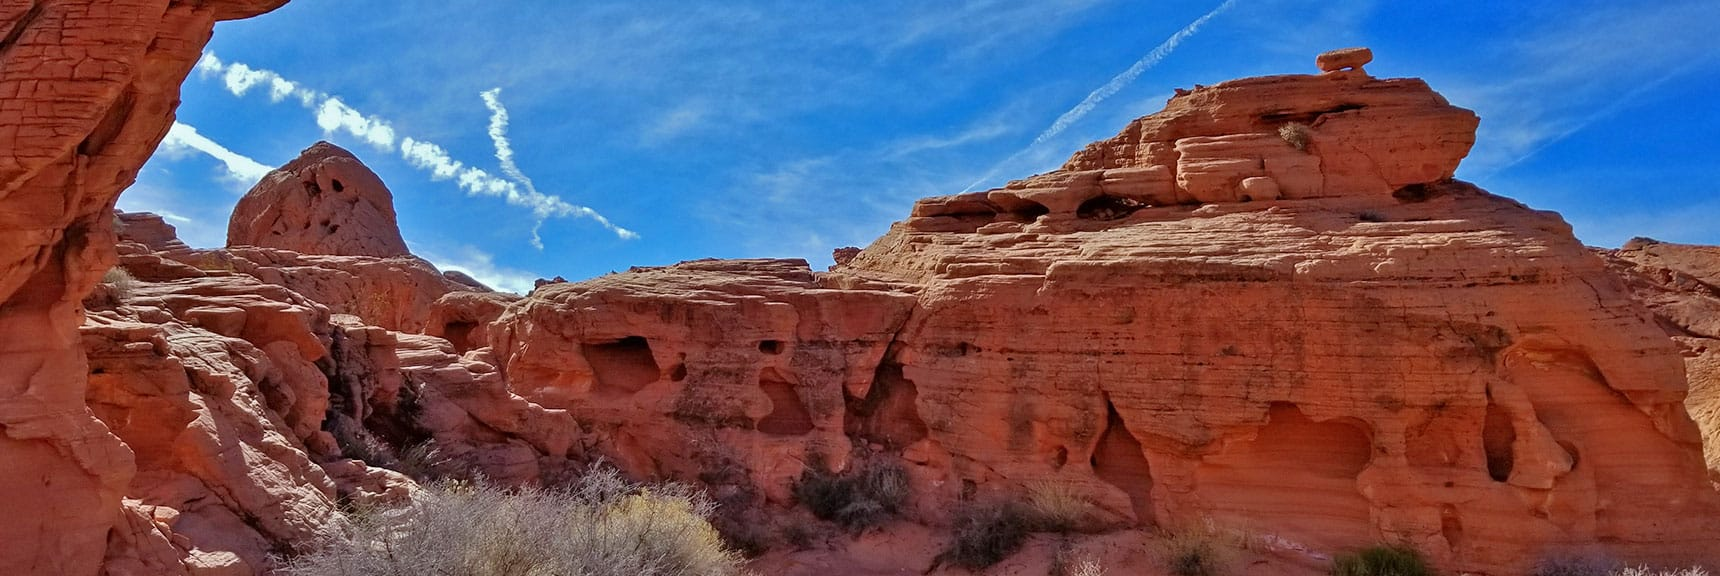 The Shades of Red Deepen While Traveling Further Into Fire Canyon on Natural Arches Trail, Valley of Fire State Park, Nevada